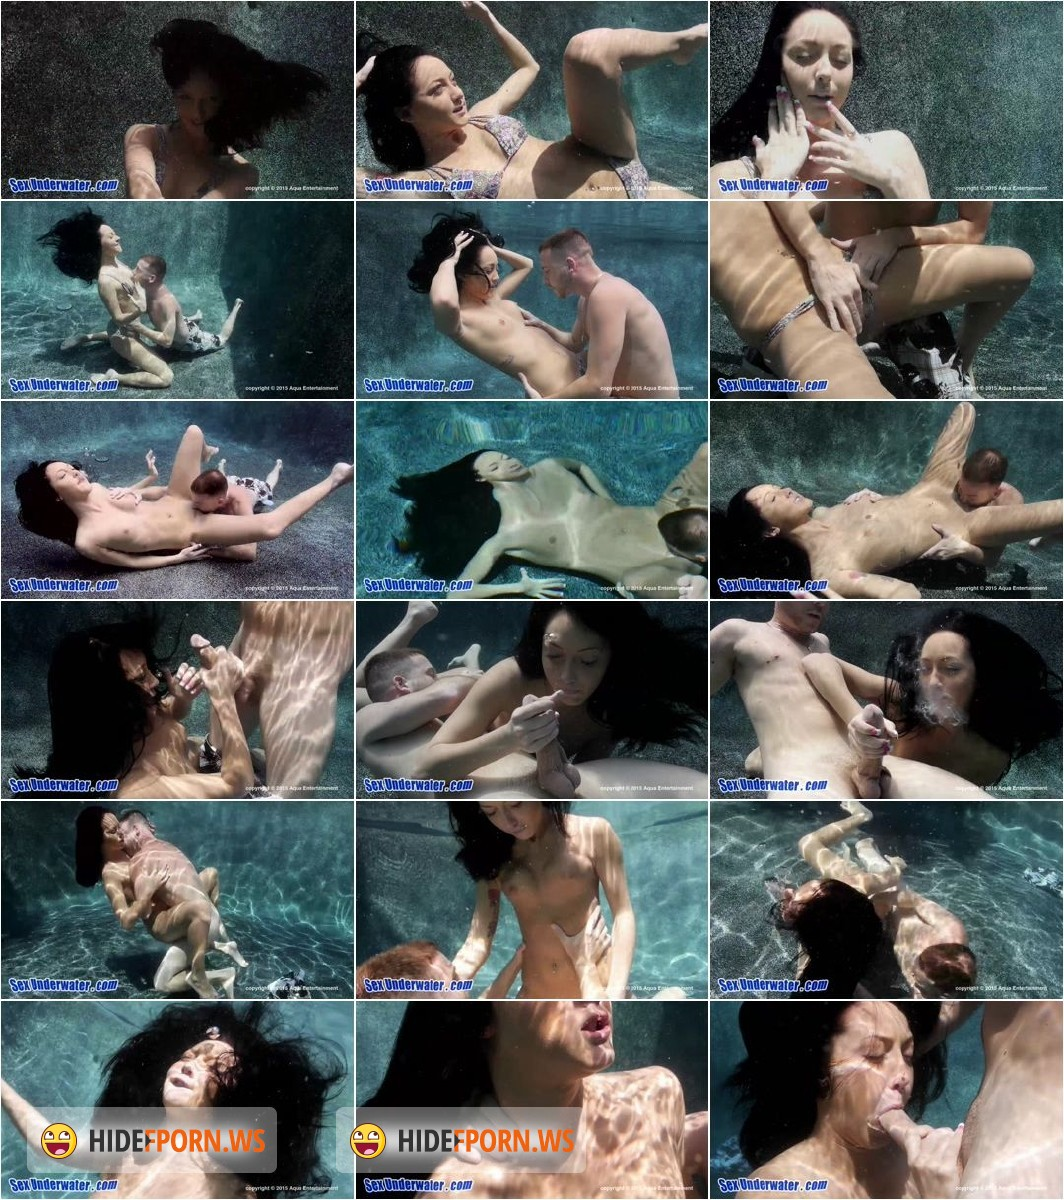 SexUnderWater.com - Sabrina Banks - Think Positive [HD 720p]